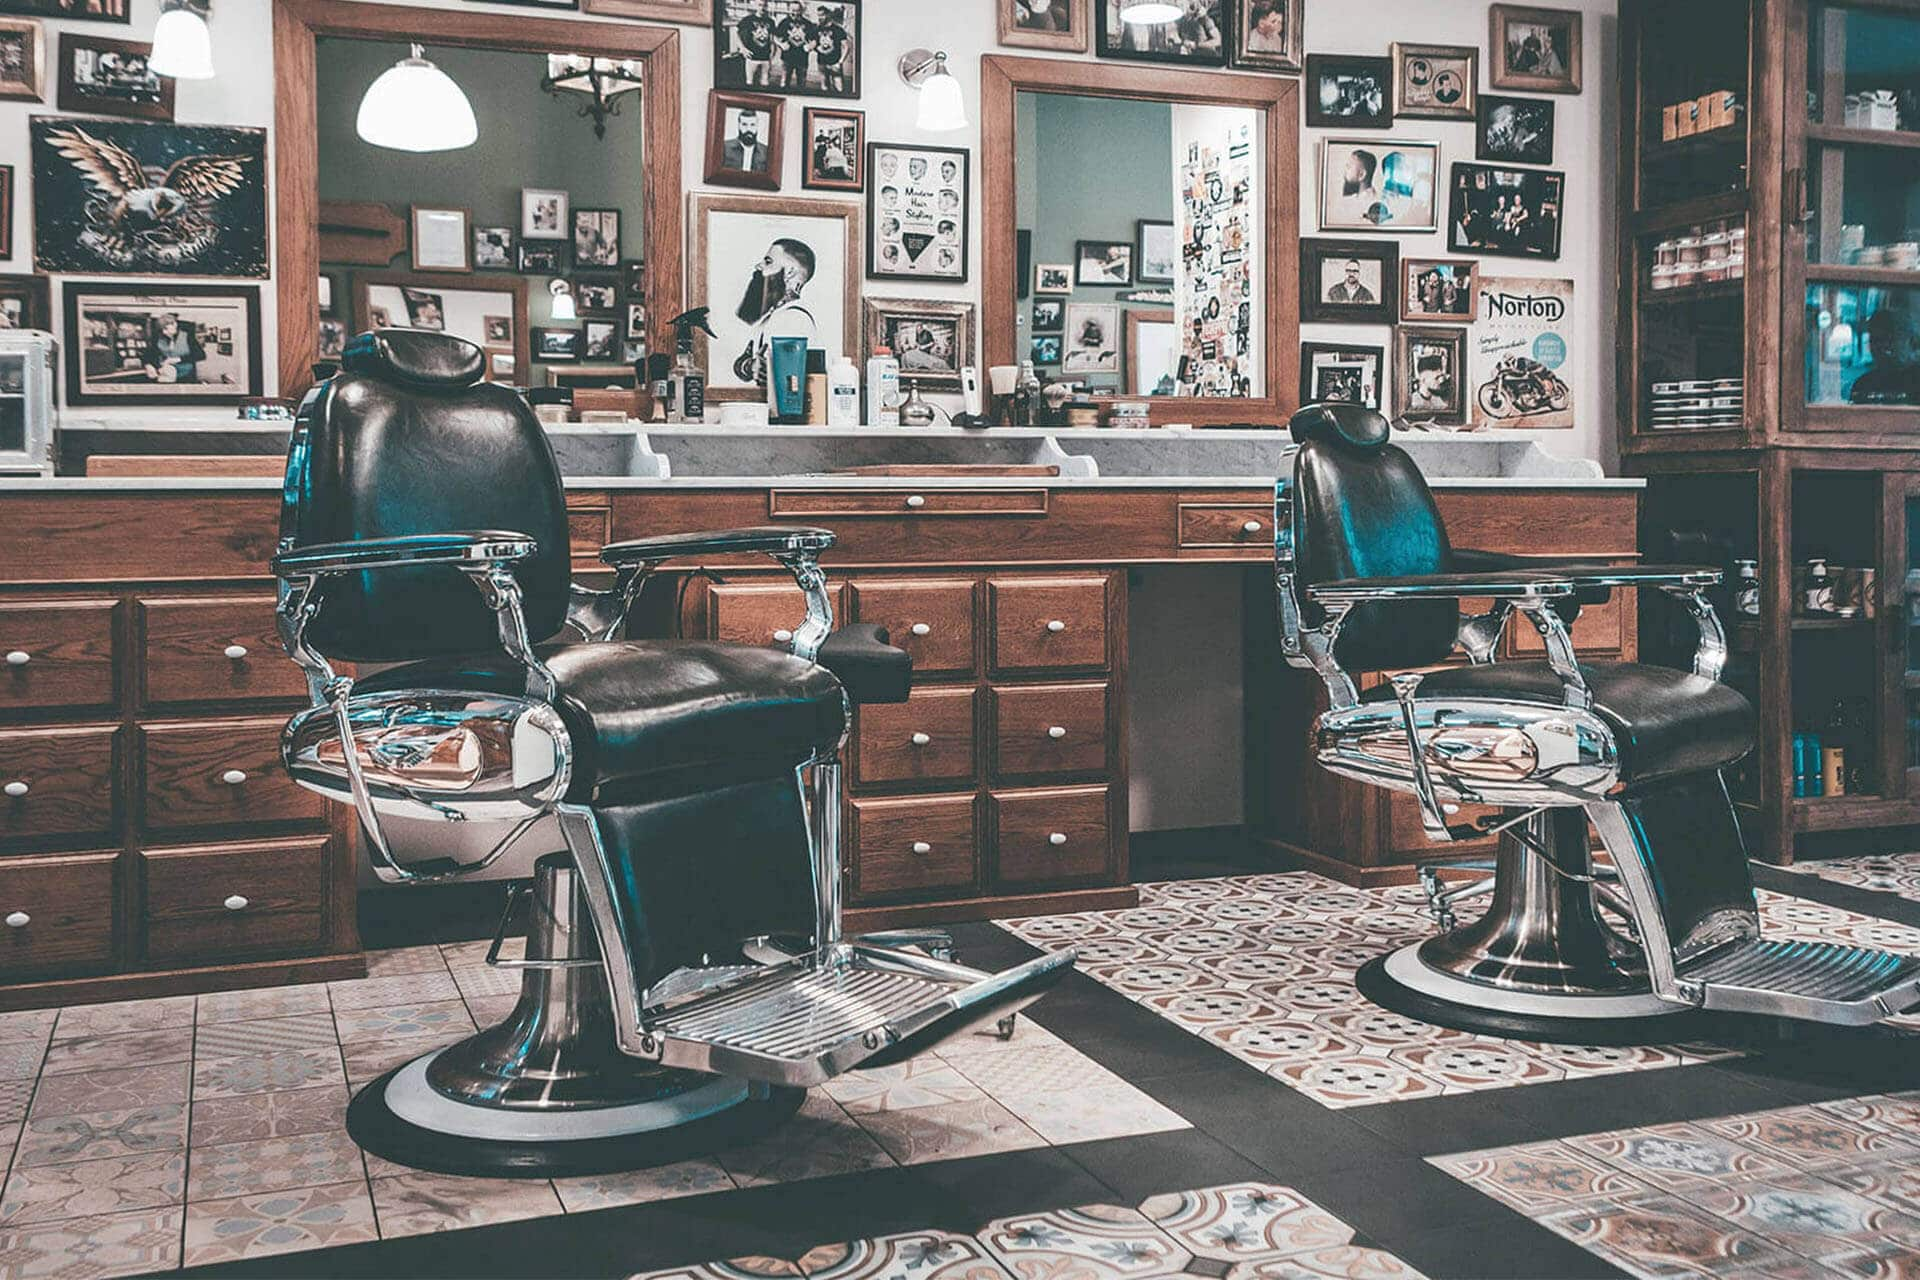 BarberShop Assistant